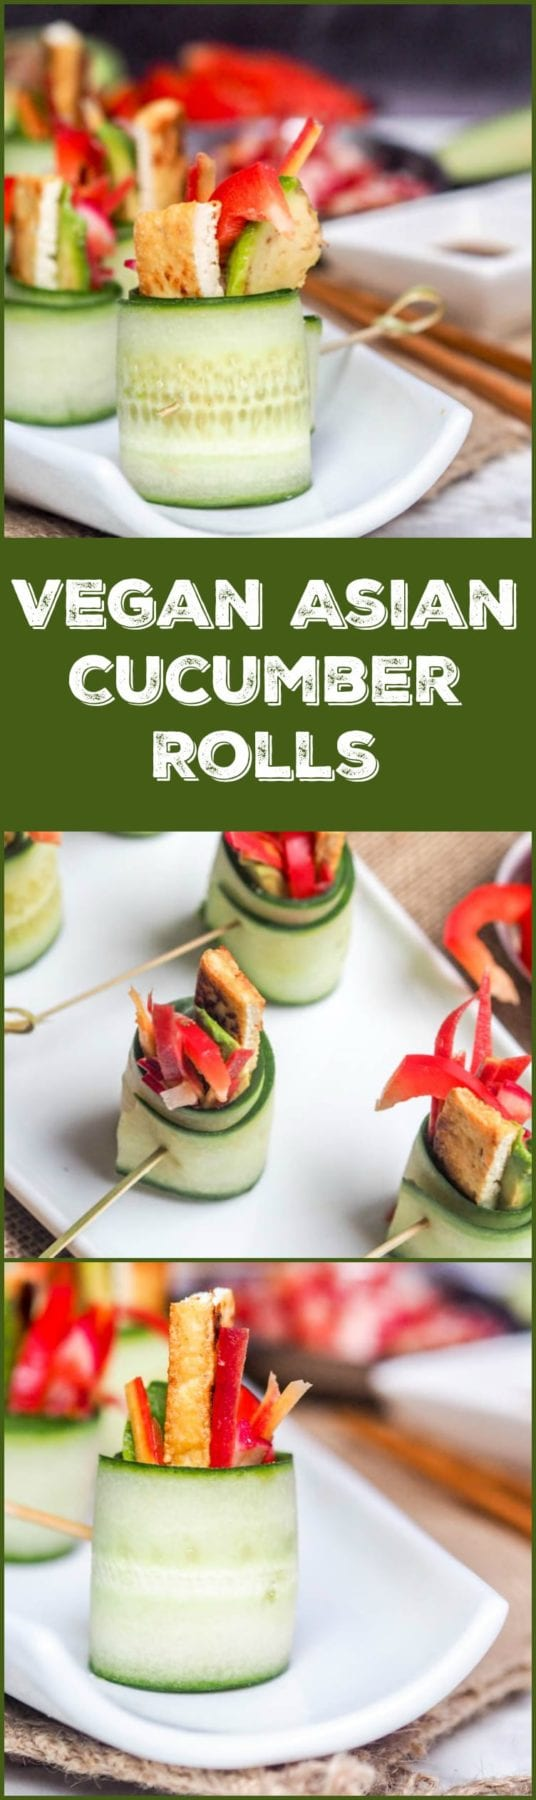 Vegan Asian Cucumber Rolls are the perfect refreshing bite of tangy Asian flavors of tofu, avocados, red pepper, and lightly pickled carrots & radishes. Low carb, low cal, healthy and gluten free! #appetizers #vegan #asianrecipes